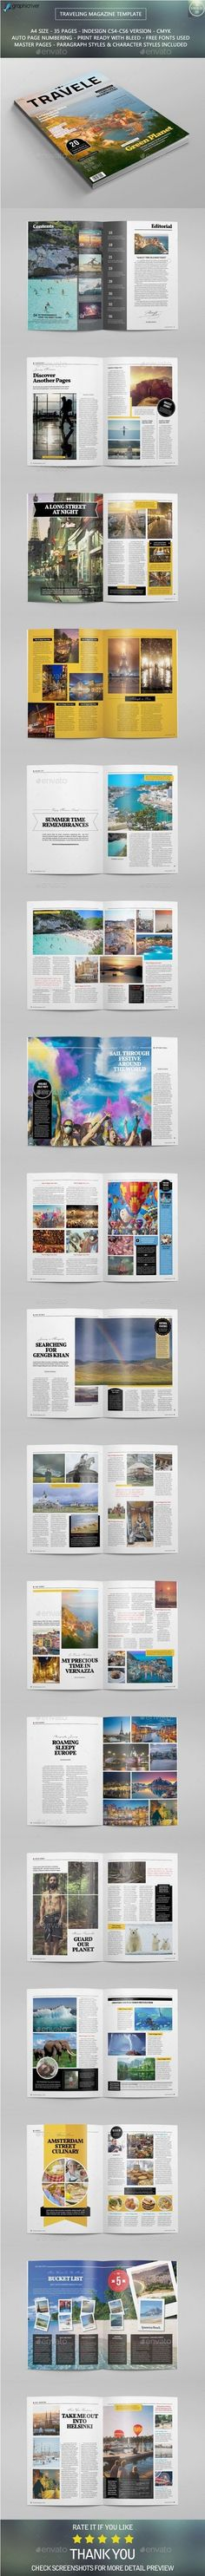 Traveling Magazine Template #design #journal Download: http://graphicriver.net/item/traveling-magazine-template/10764387?ref=ksioks